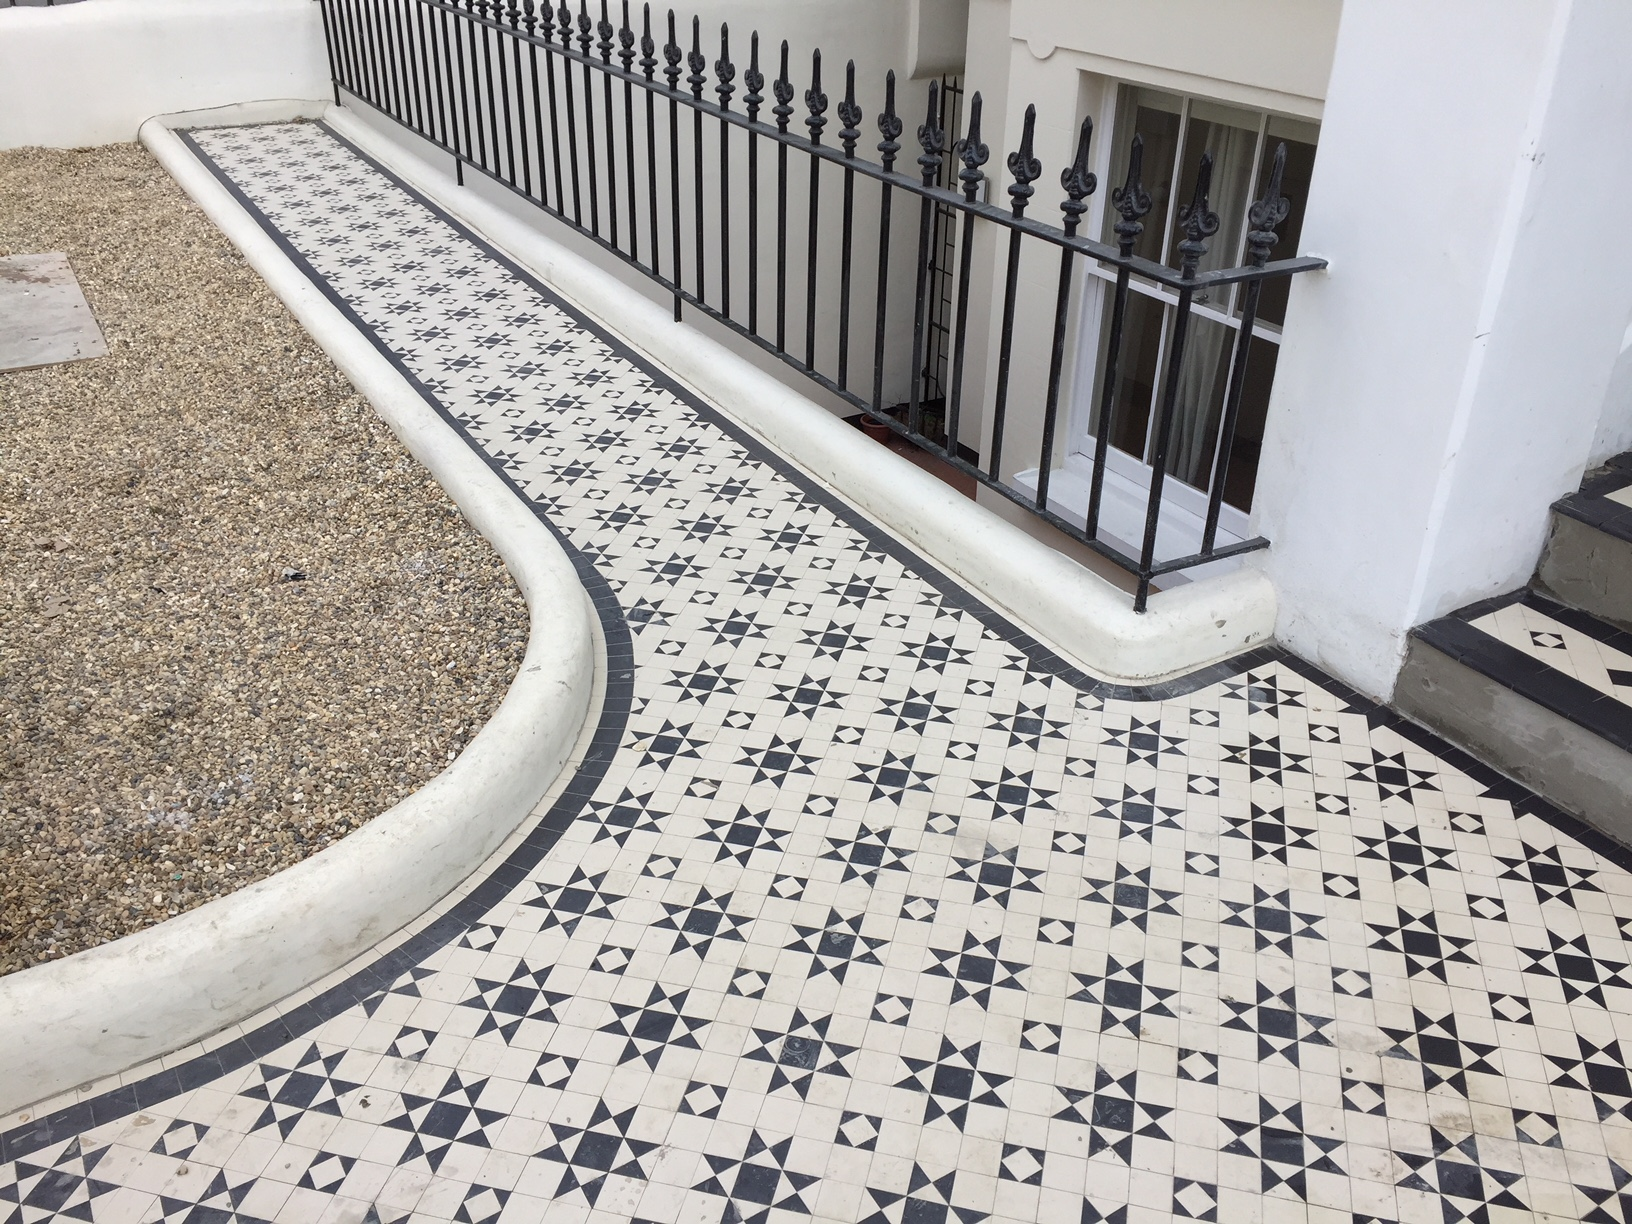 Examples of new bespoke geometric tile installations in Central London-1